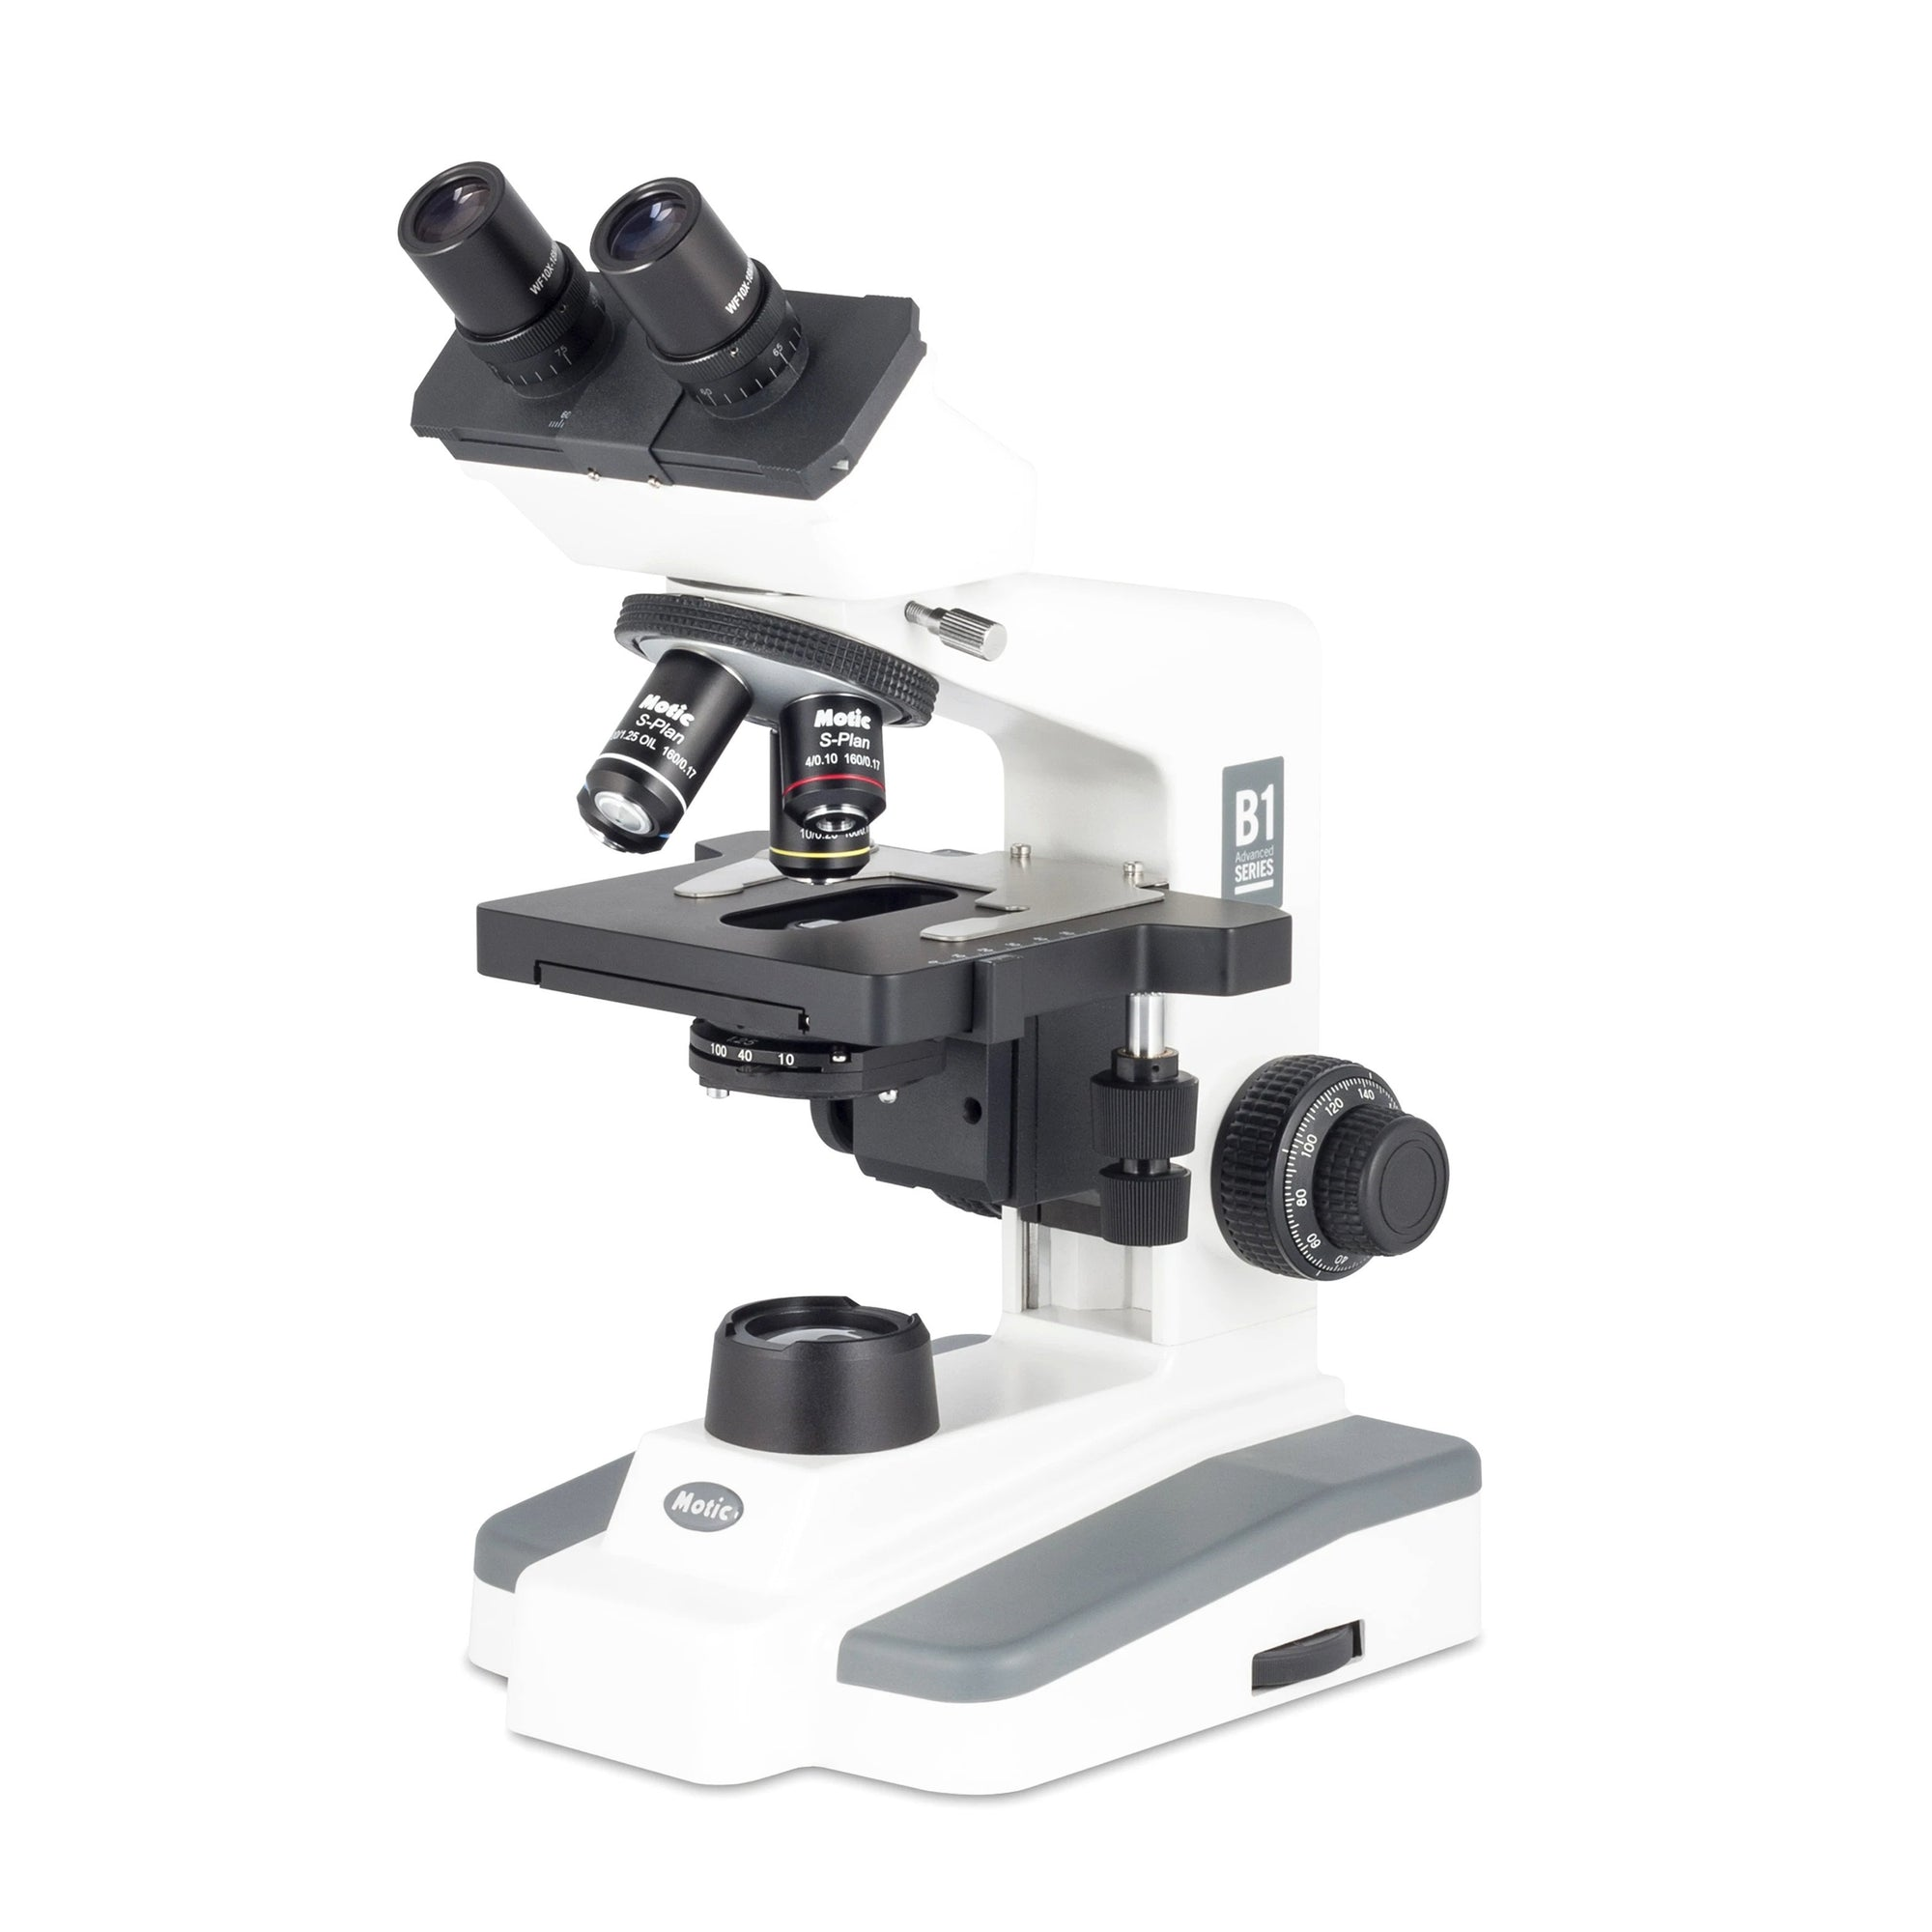 Motic B1 Series Binocular Microscopes